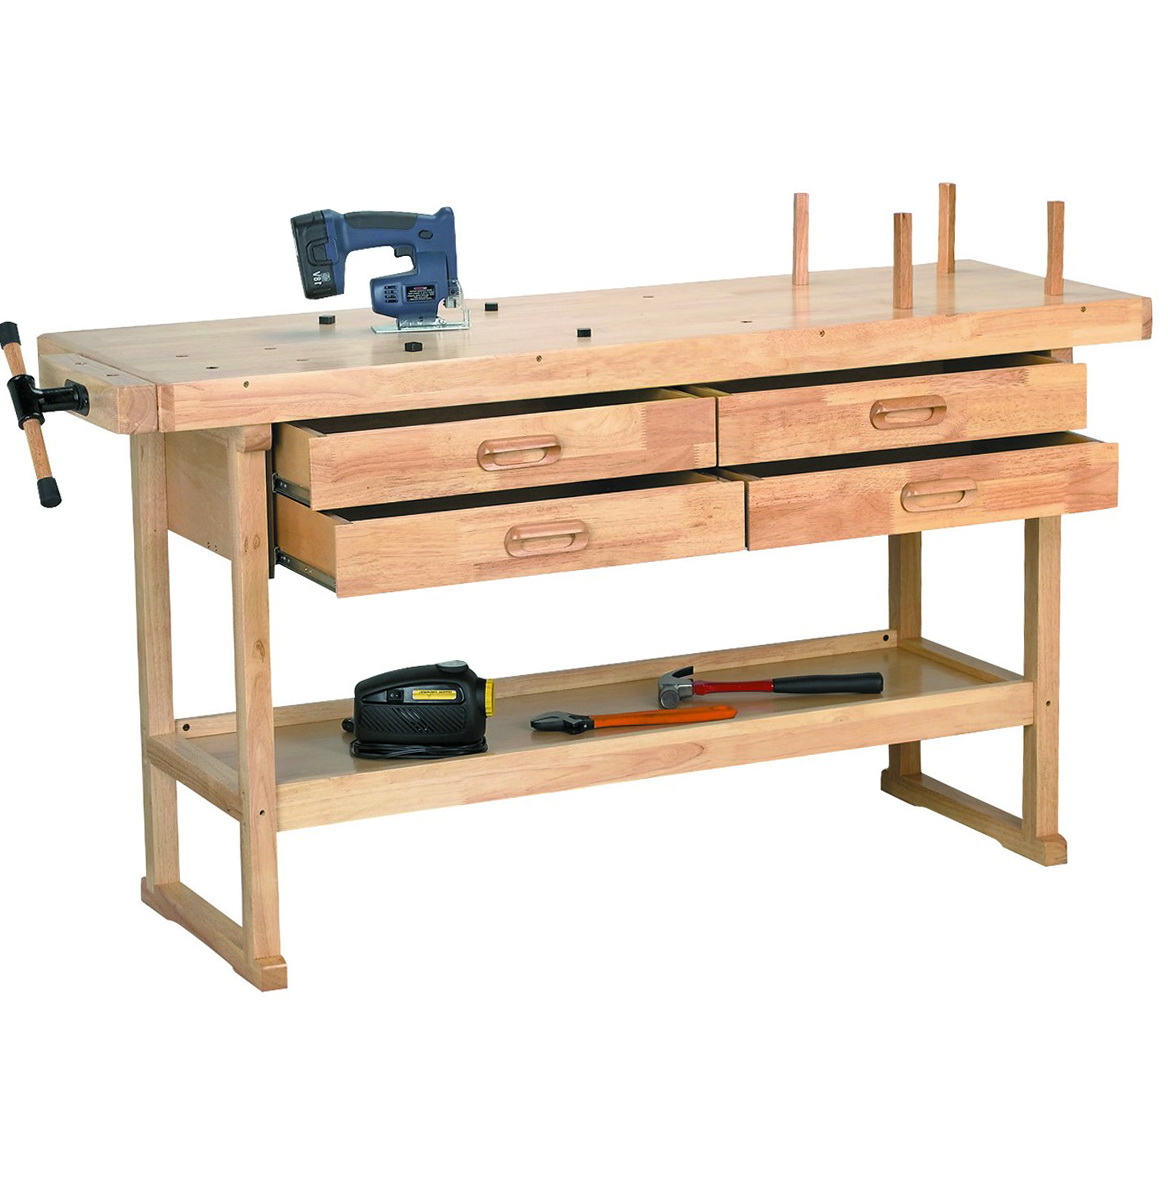 Wooden Work Bench For Sale Home Design Ideas